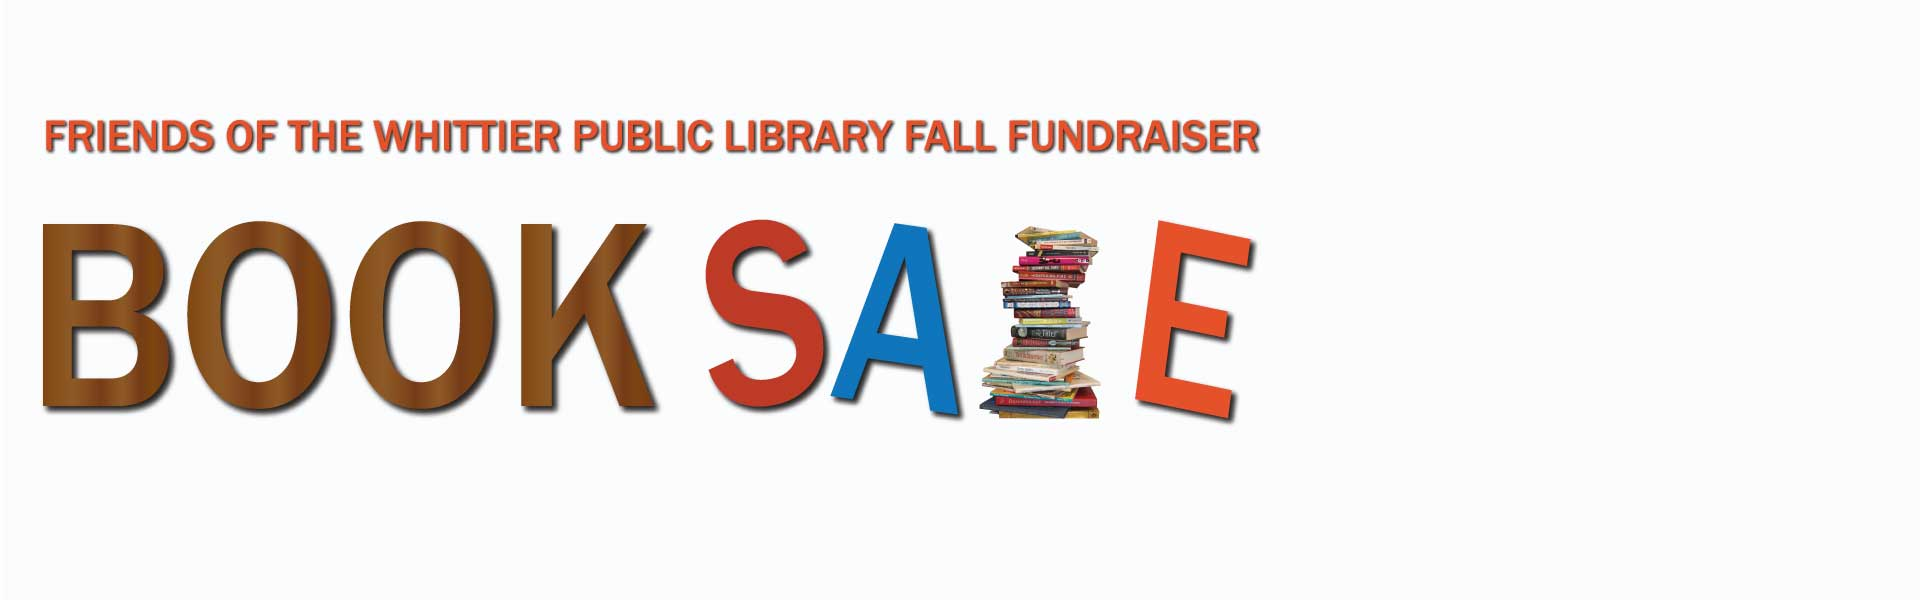 Friends of the library Book Sale Fundraiser